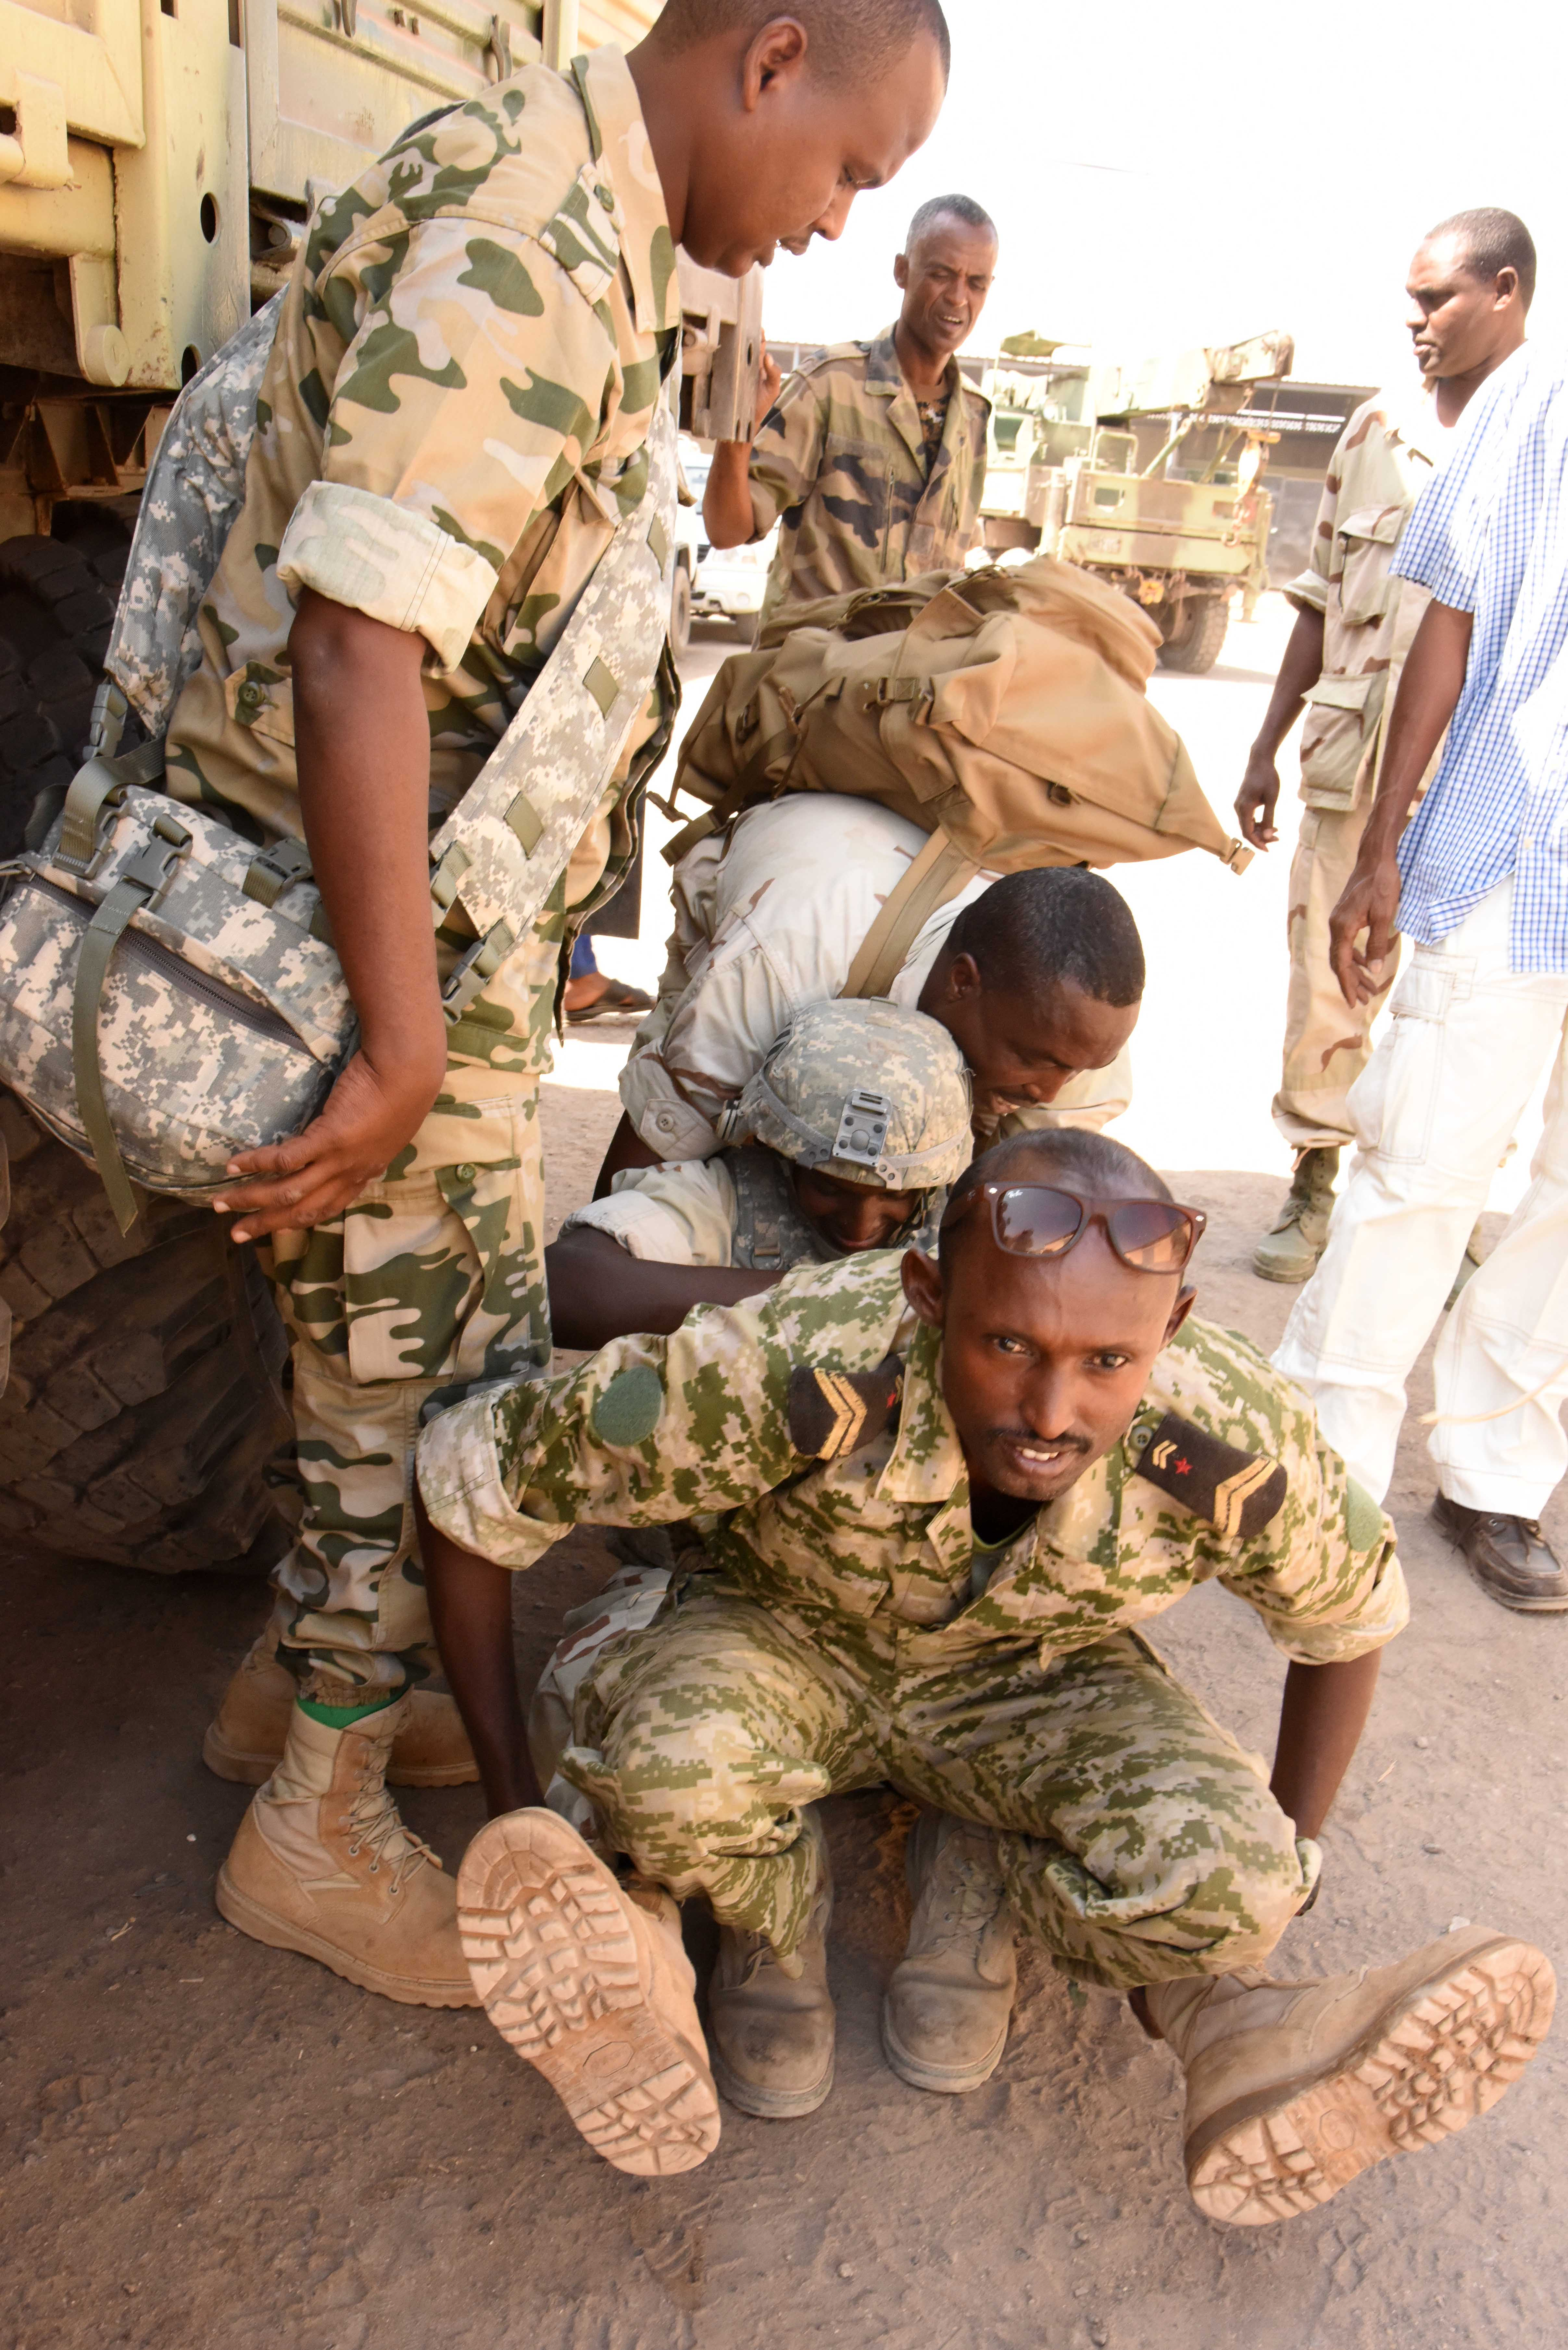 Djiboutian Armed Forces (FAD) soldiers lift a simulated injured comrade during a Combat Lifesaver Course scenario at the Central Management of Materials and Engineering Services compound, Djibouti, Mar. 5, 2016. FAD soldiers learned diagnosis, transport and treatment of battlefield wounds to prepare them for future deployments. (U.S. Air Force photo by Staff Sgt. Victoria Sneed)